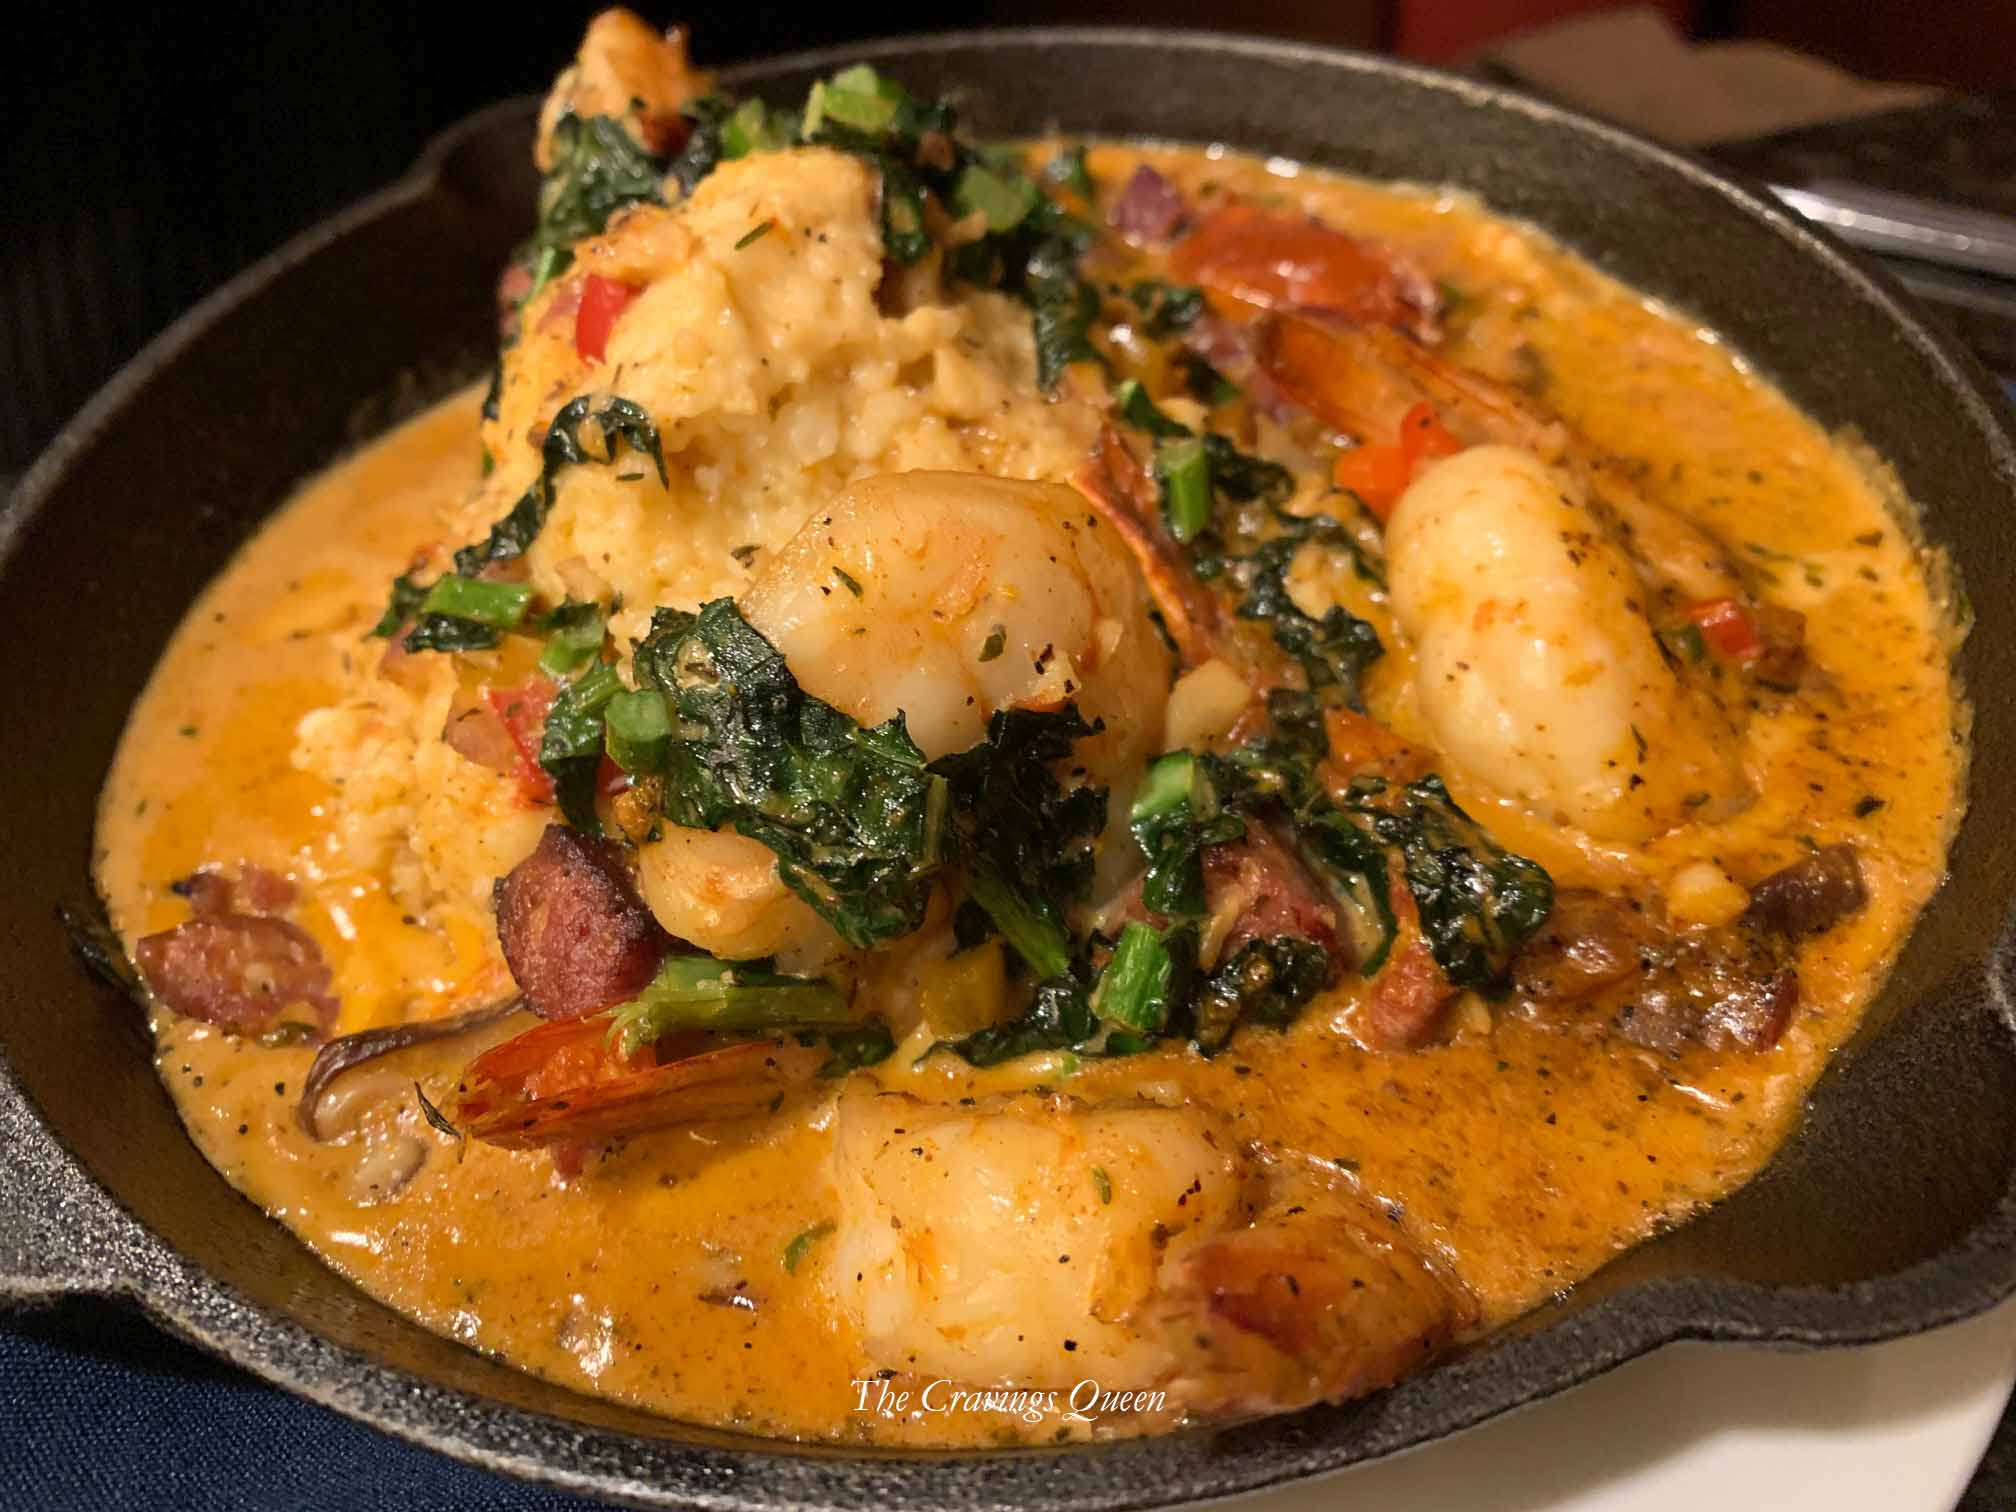 Cyprus-Grille-shrimp-and-grits.jpg